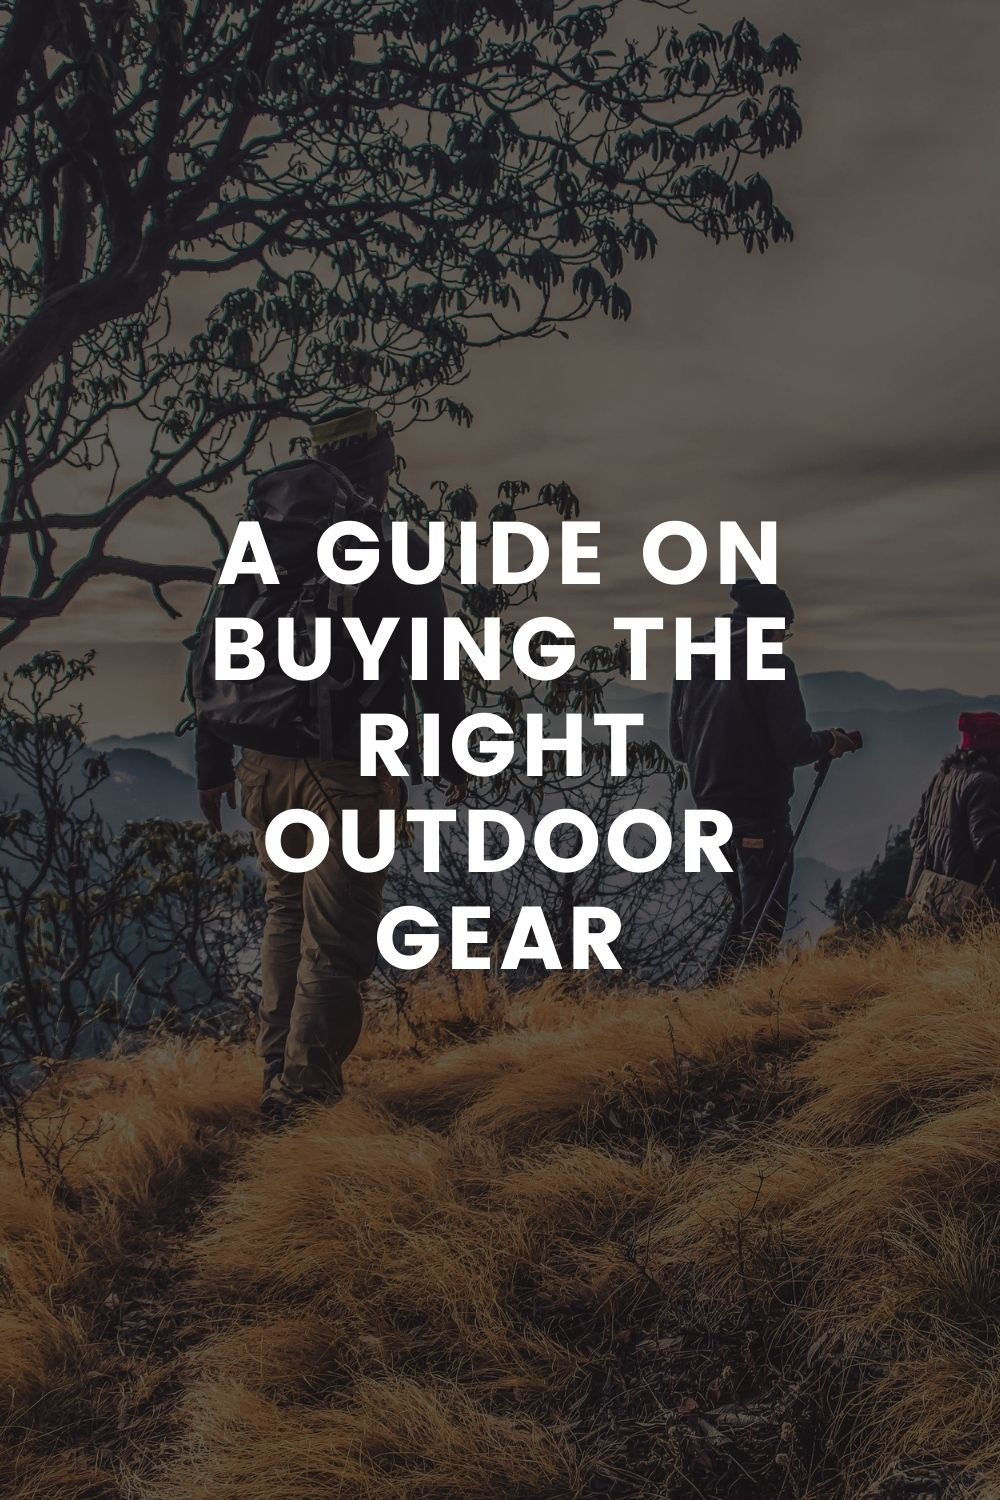 A Guide on Buying the Right Outdoor Gear